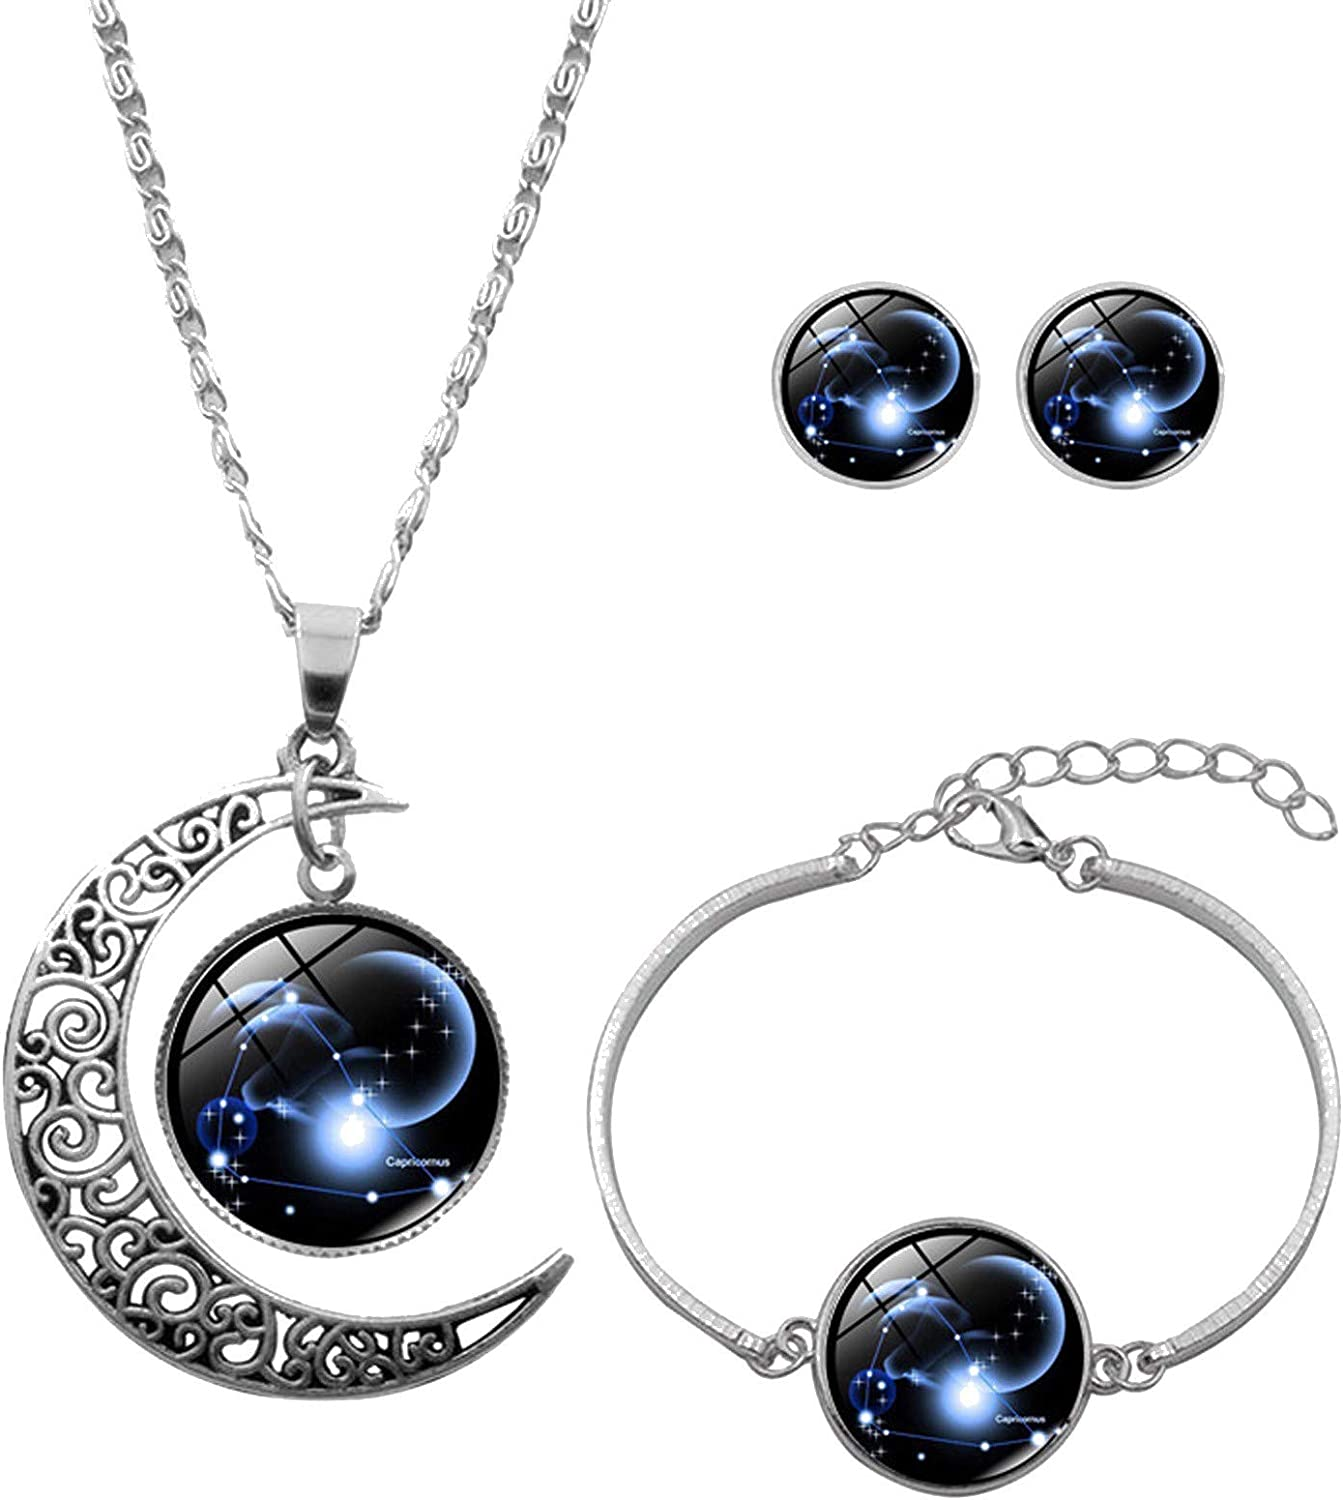 3 Pcs Jewelry Fixed price for sale Set Fashion Astro Overseas parallel import regular item 12 Zodiac Constellation Necklace